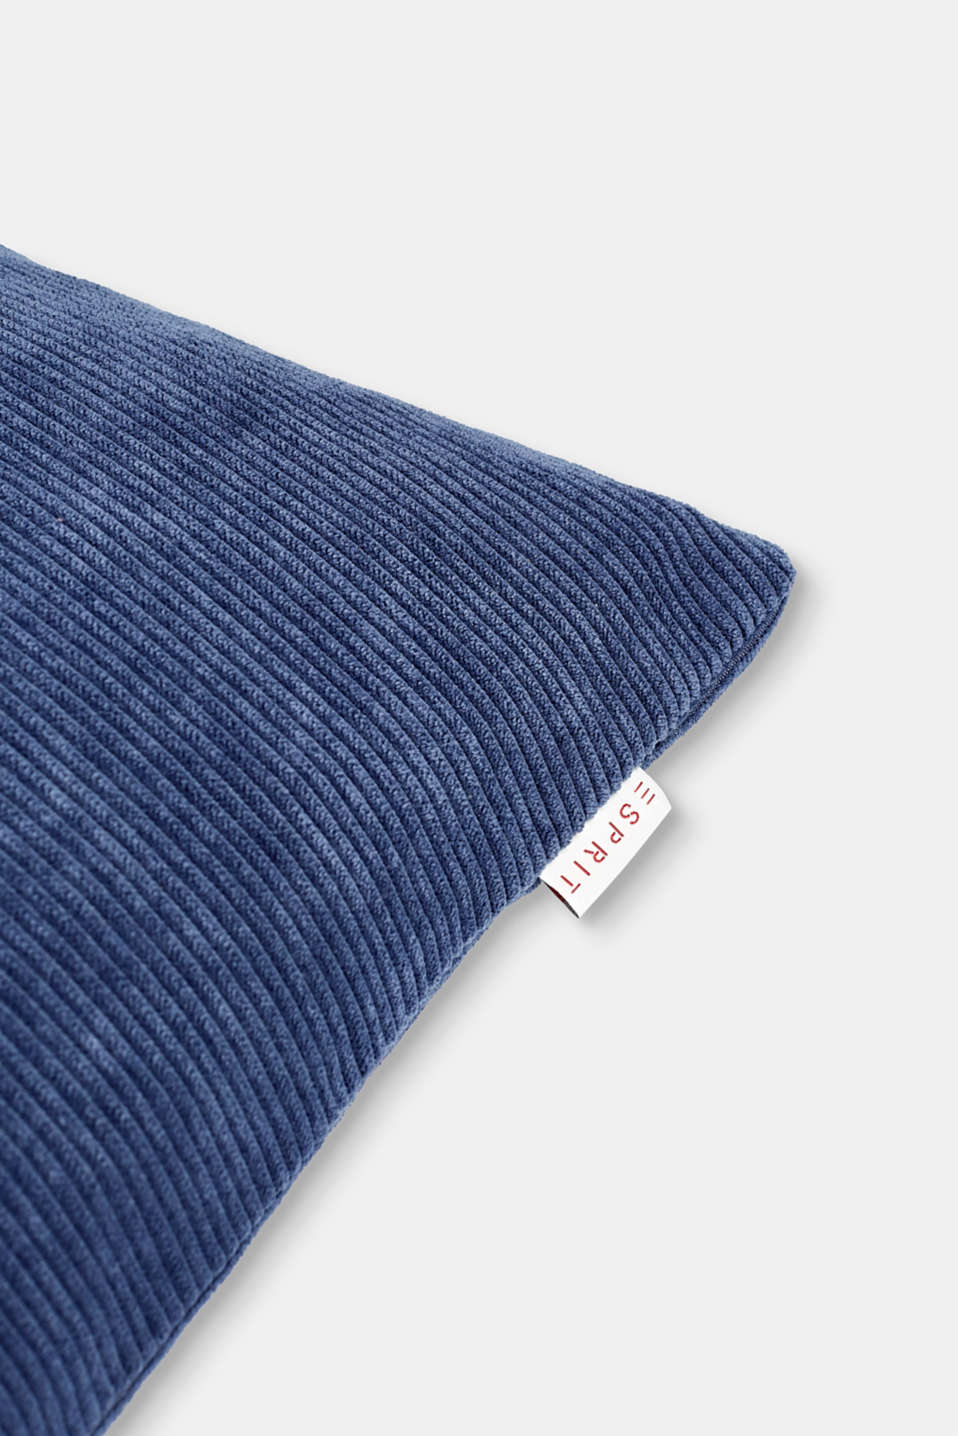 Cushion cover made of corduroy velvet, BLUE, detail image number 1